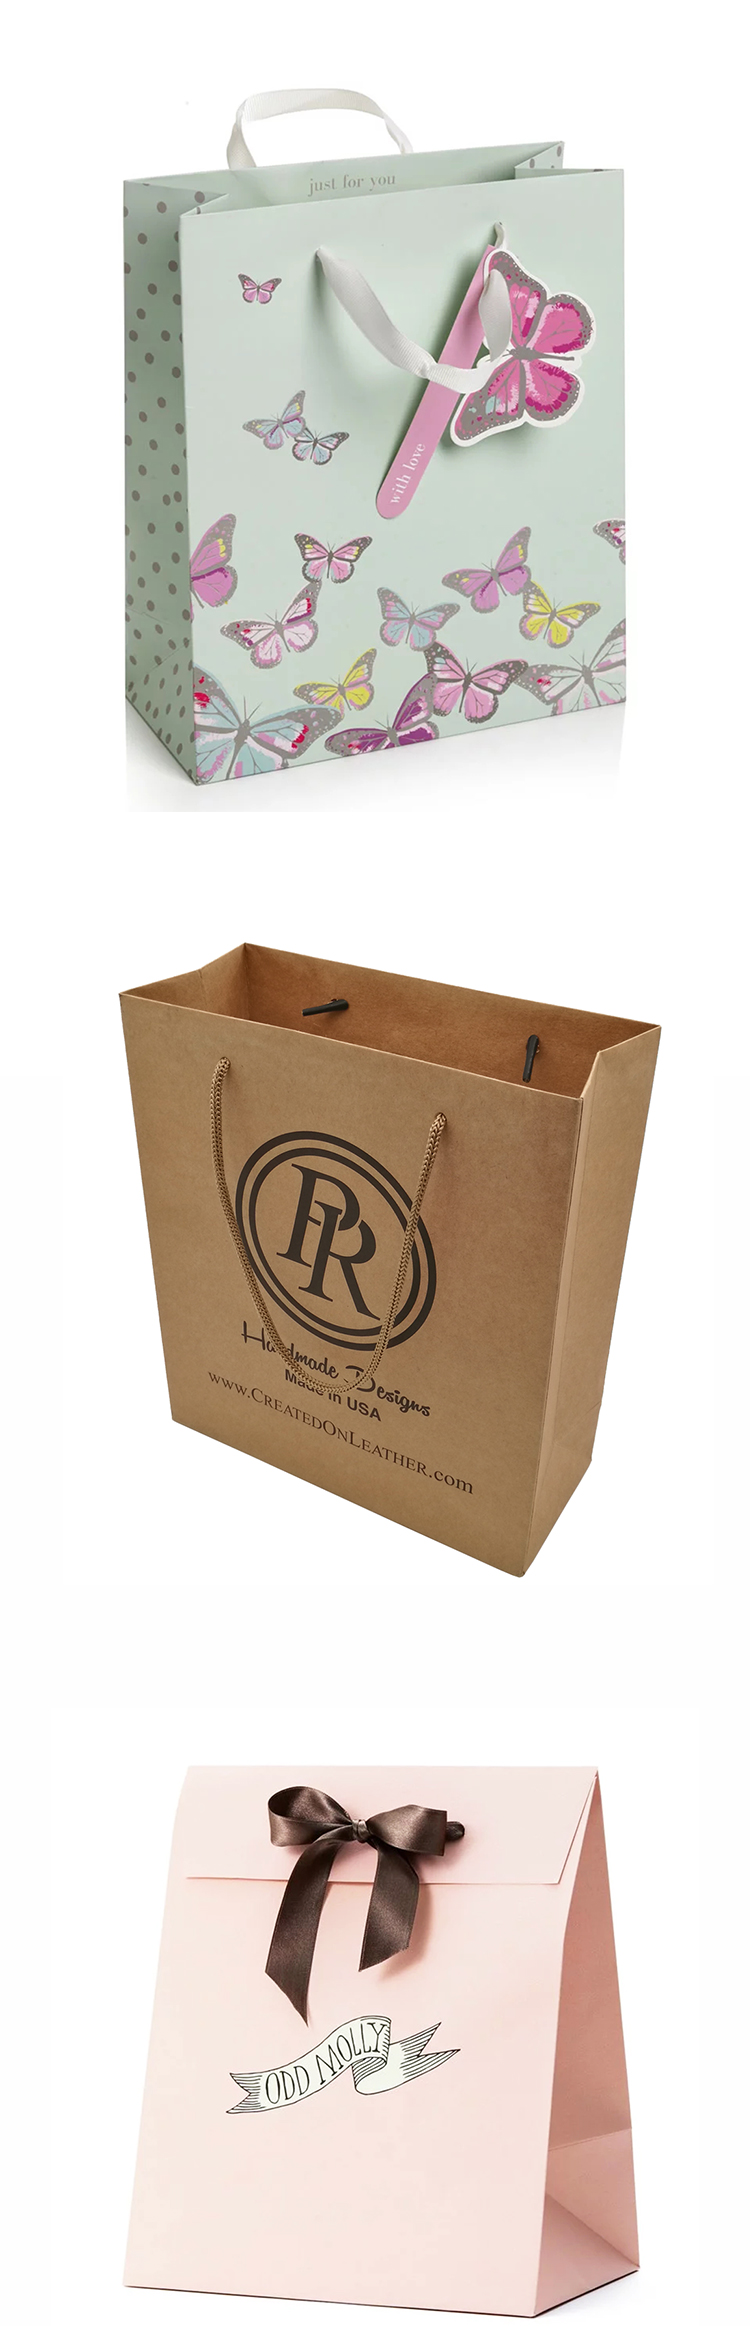 bags with paper